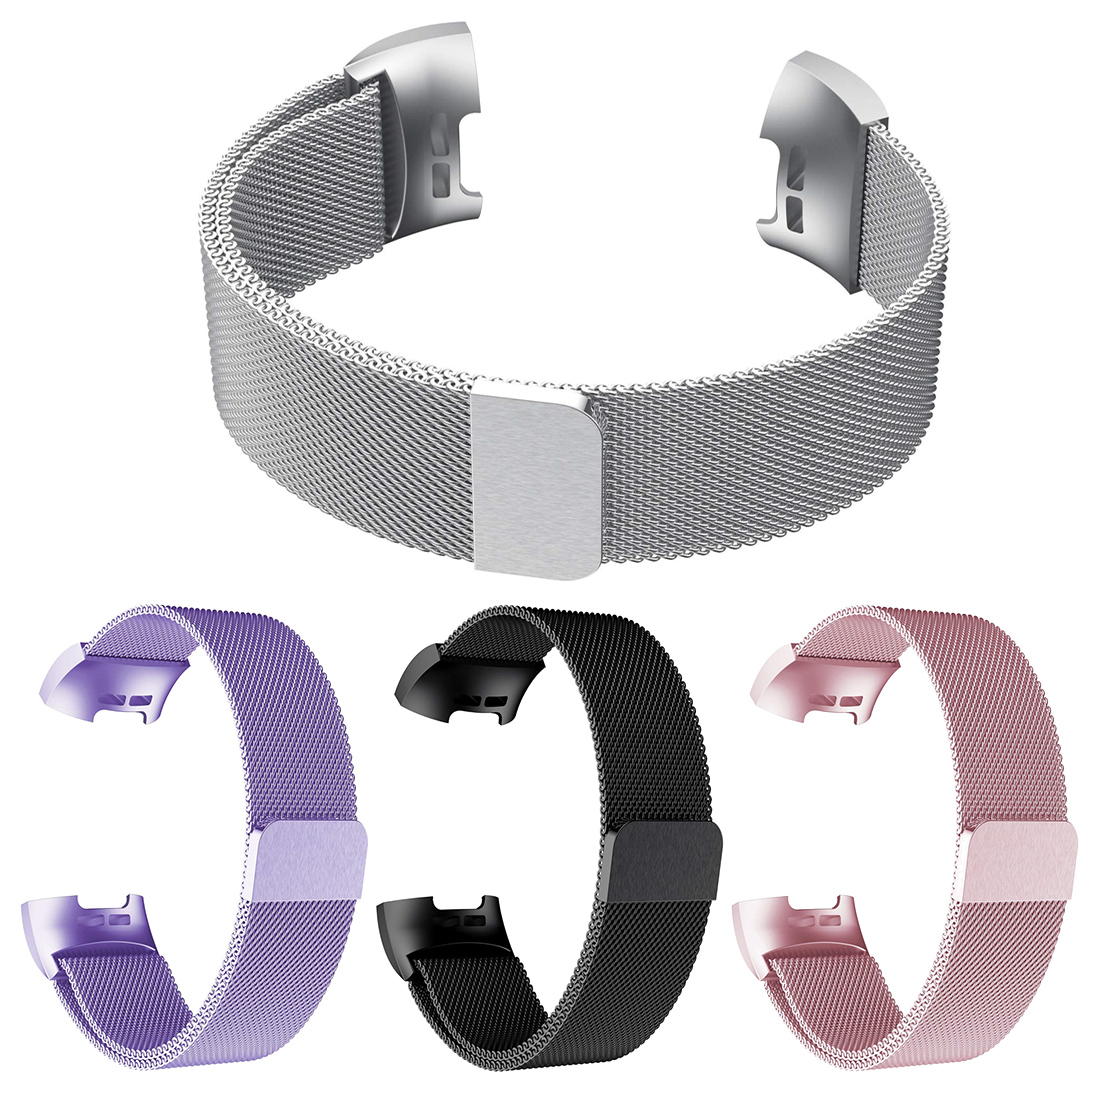 For Fitbit Charge 3 Hr Band Strap Replacement Wrist Bracelet Stainless Steel Metal Screwless for Fit Bit Charge3 Smart Watch S LFor Fitbit Charge 3 Hr Band Strap Replacement Wrist Bracelet Stainless Steel Metal Screwless for Fit Bit Charge3 Smart Watch S L